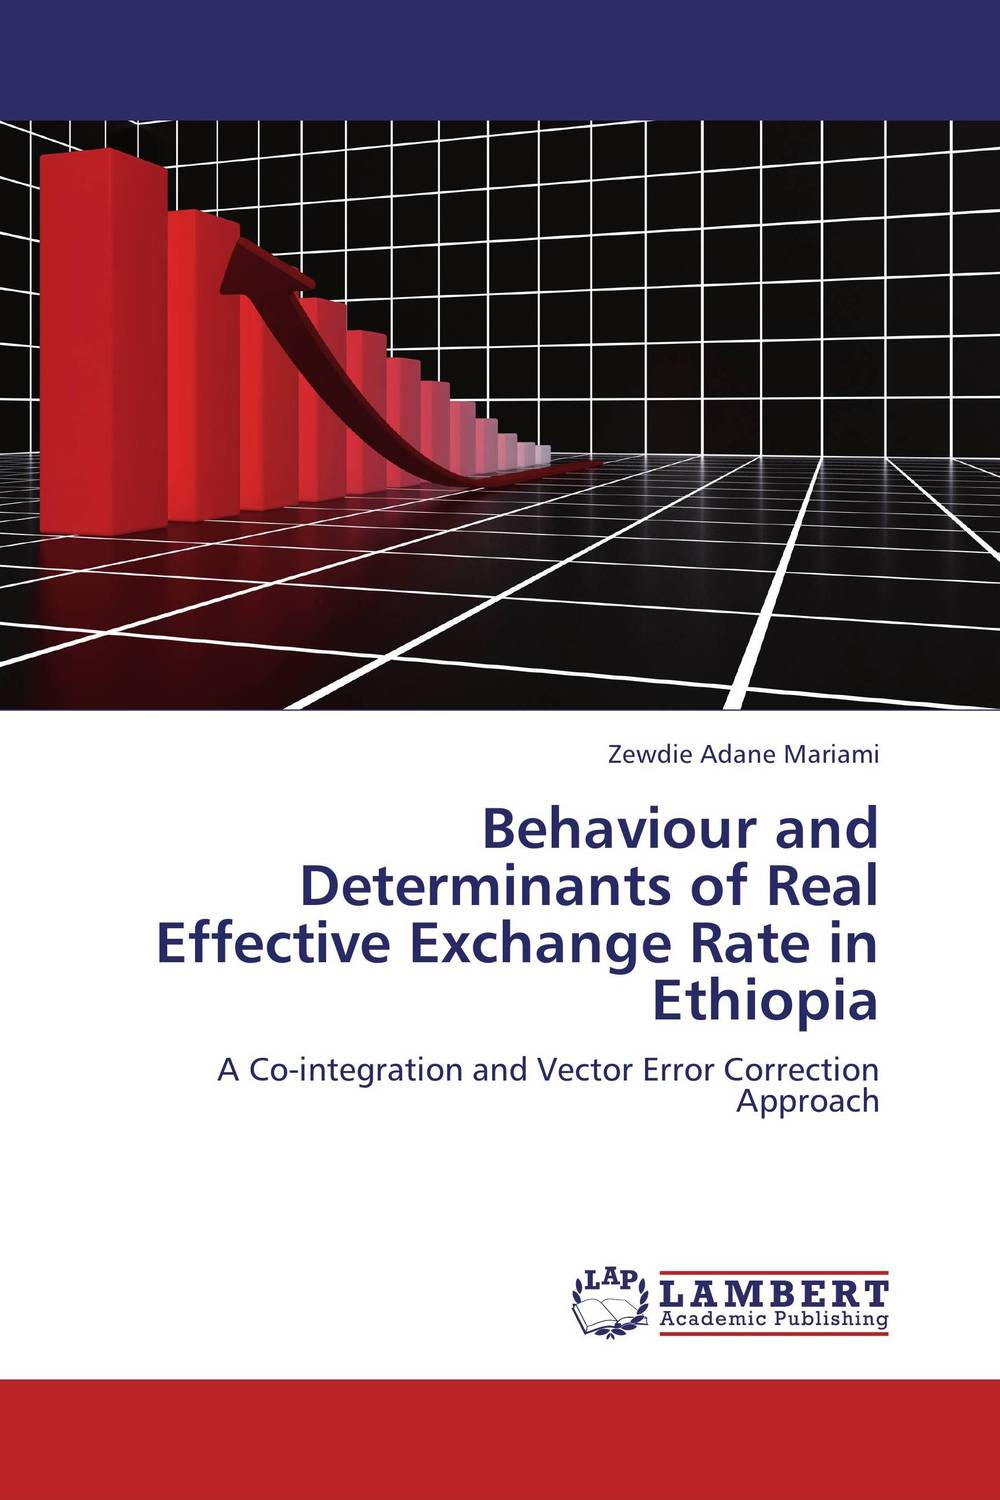 Фото Behaviour and Determinants of Real Effective Exchange Rate in Ethiopia cervical cancer in amhara region in ethiopia